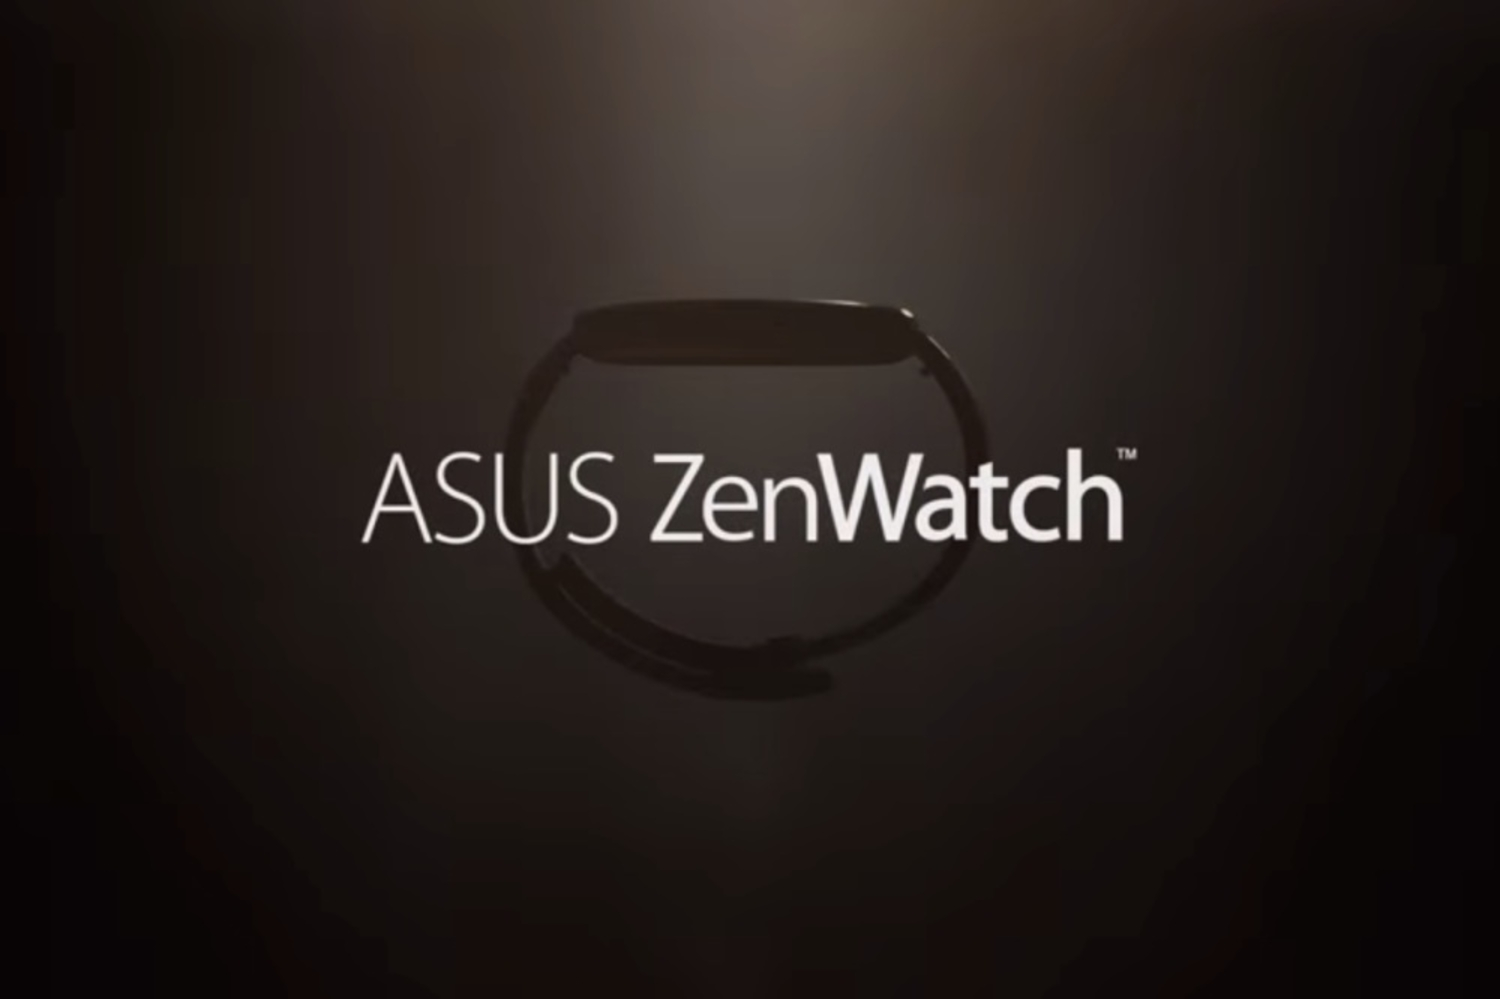 Asus Is Set To Unveil The Most Attractive Smartwatch Yet On Wednesday